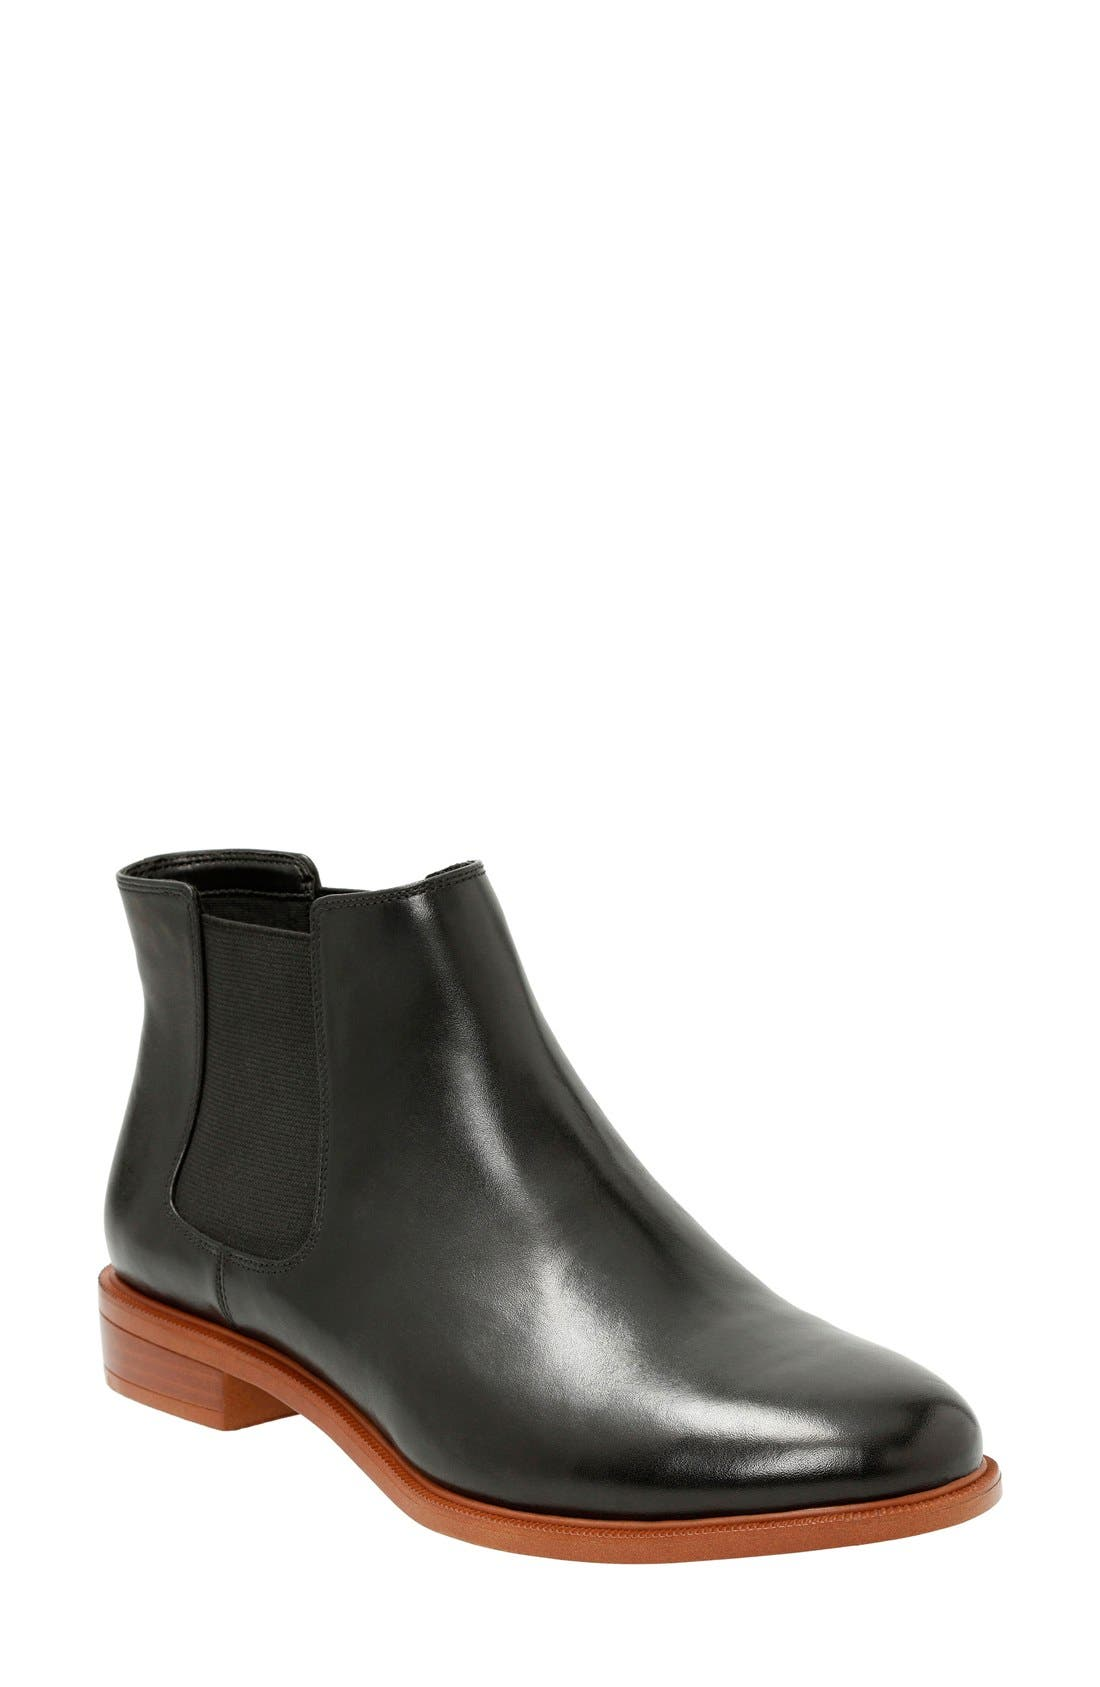 'Taylor Shine' Chelsea Boot,                         Main,                         color, 003